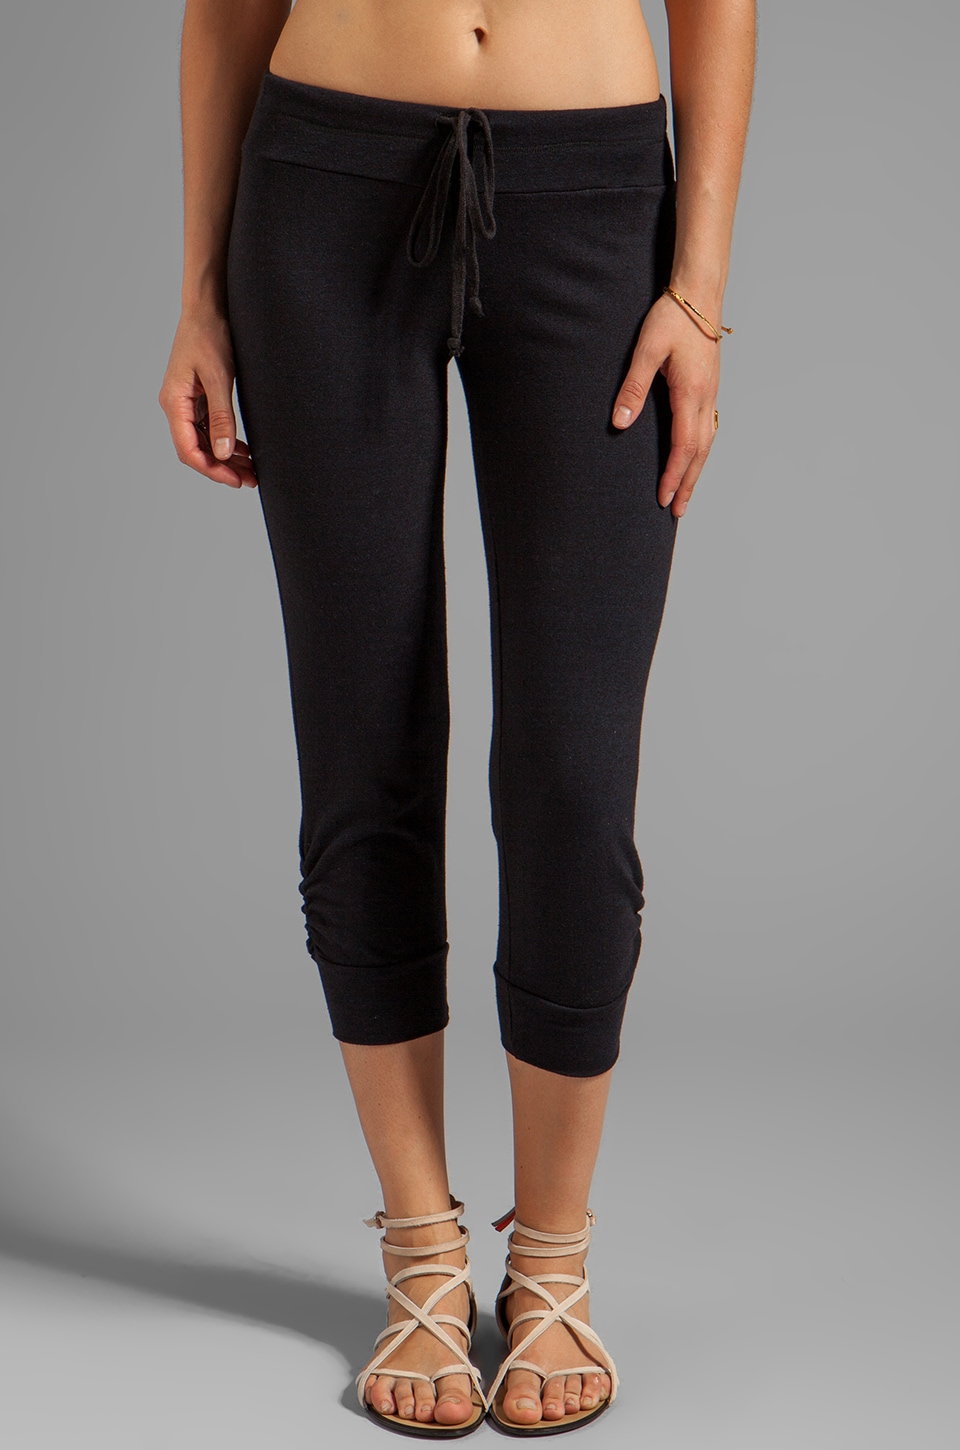 Splendid Malange Active Sweat Pant in Black